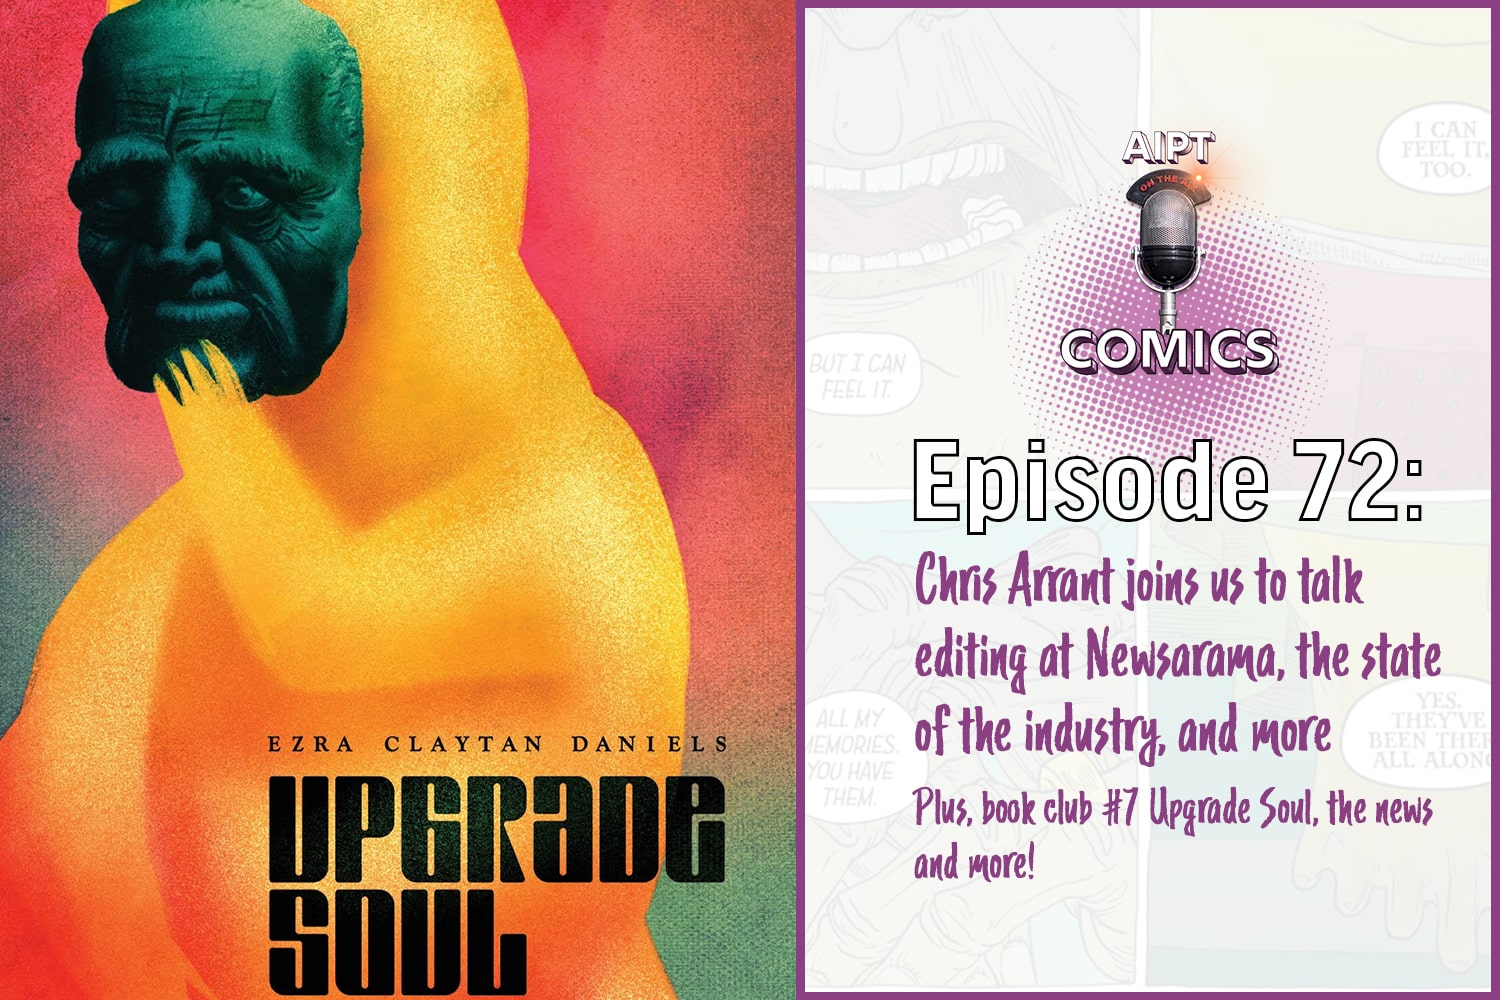 AIPT Comics Podcast episode 72: Editor Chris Arrant gives a full report on Newsarama & the industry, plus we analyze 'Upgrade Soul'